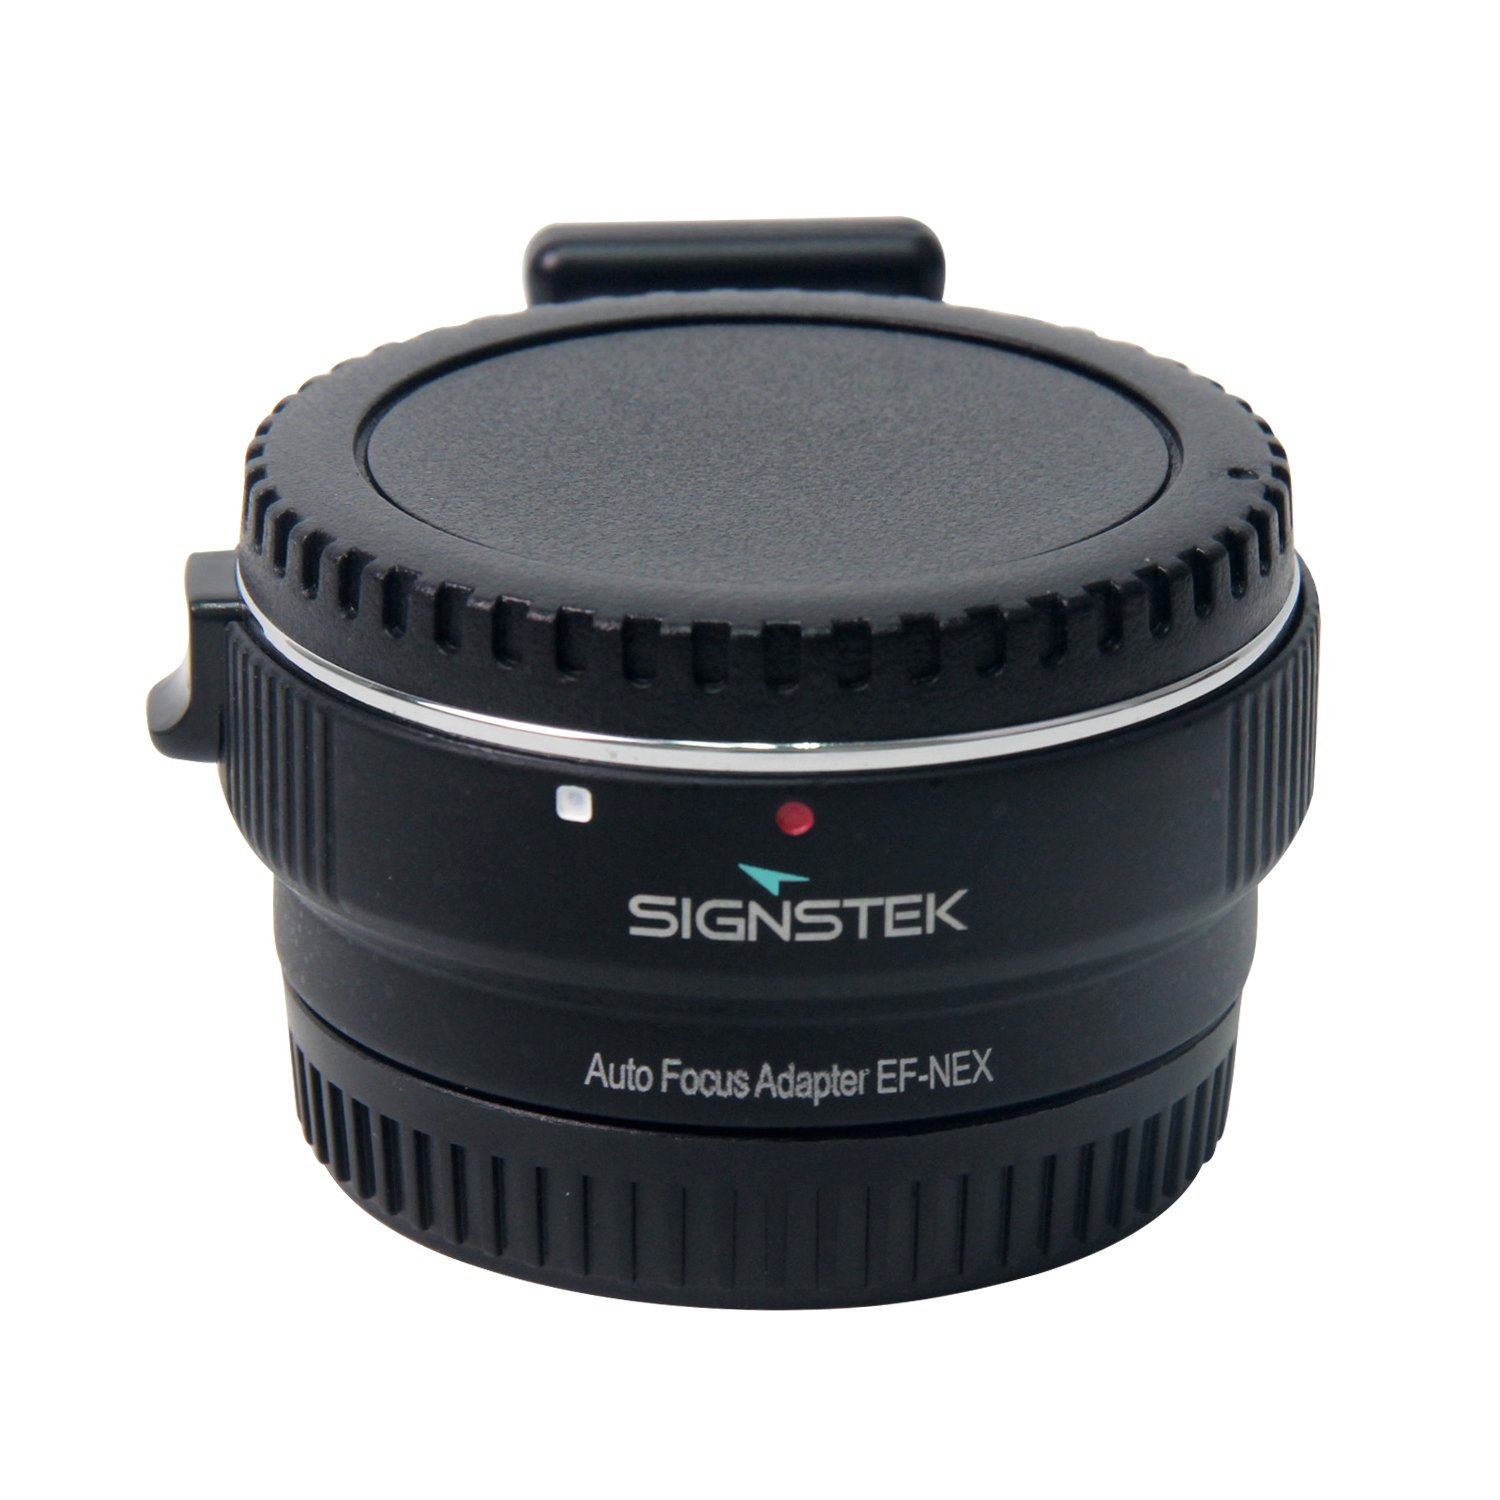 Signstek Newest Version Electronic Auto Focus EF-NEX EF-EMOUNT FX Lens Mount Adapter for Canon EF EF-S Lens to Sony E Mount NEX 3/3N/5N/5R/7/A7 A7R Full Frame by Signstek